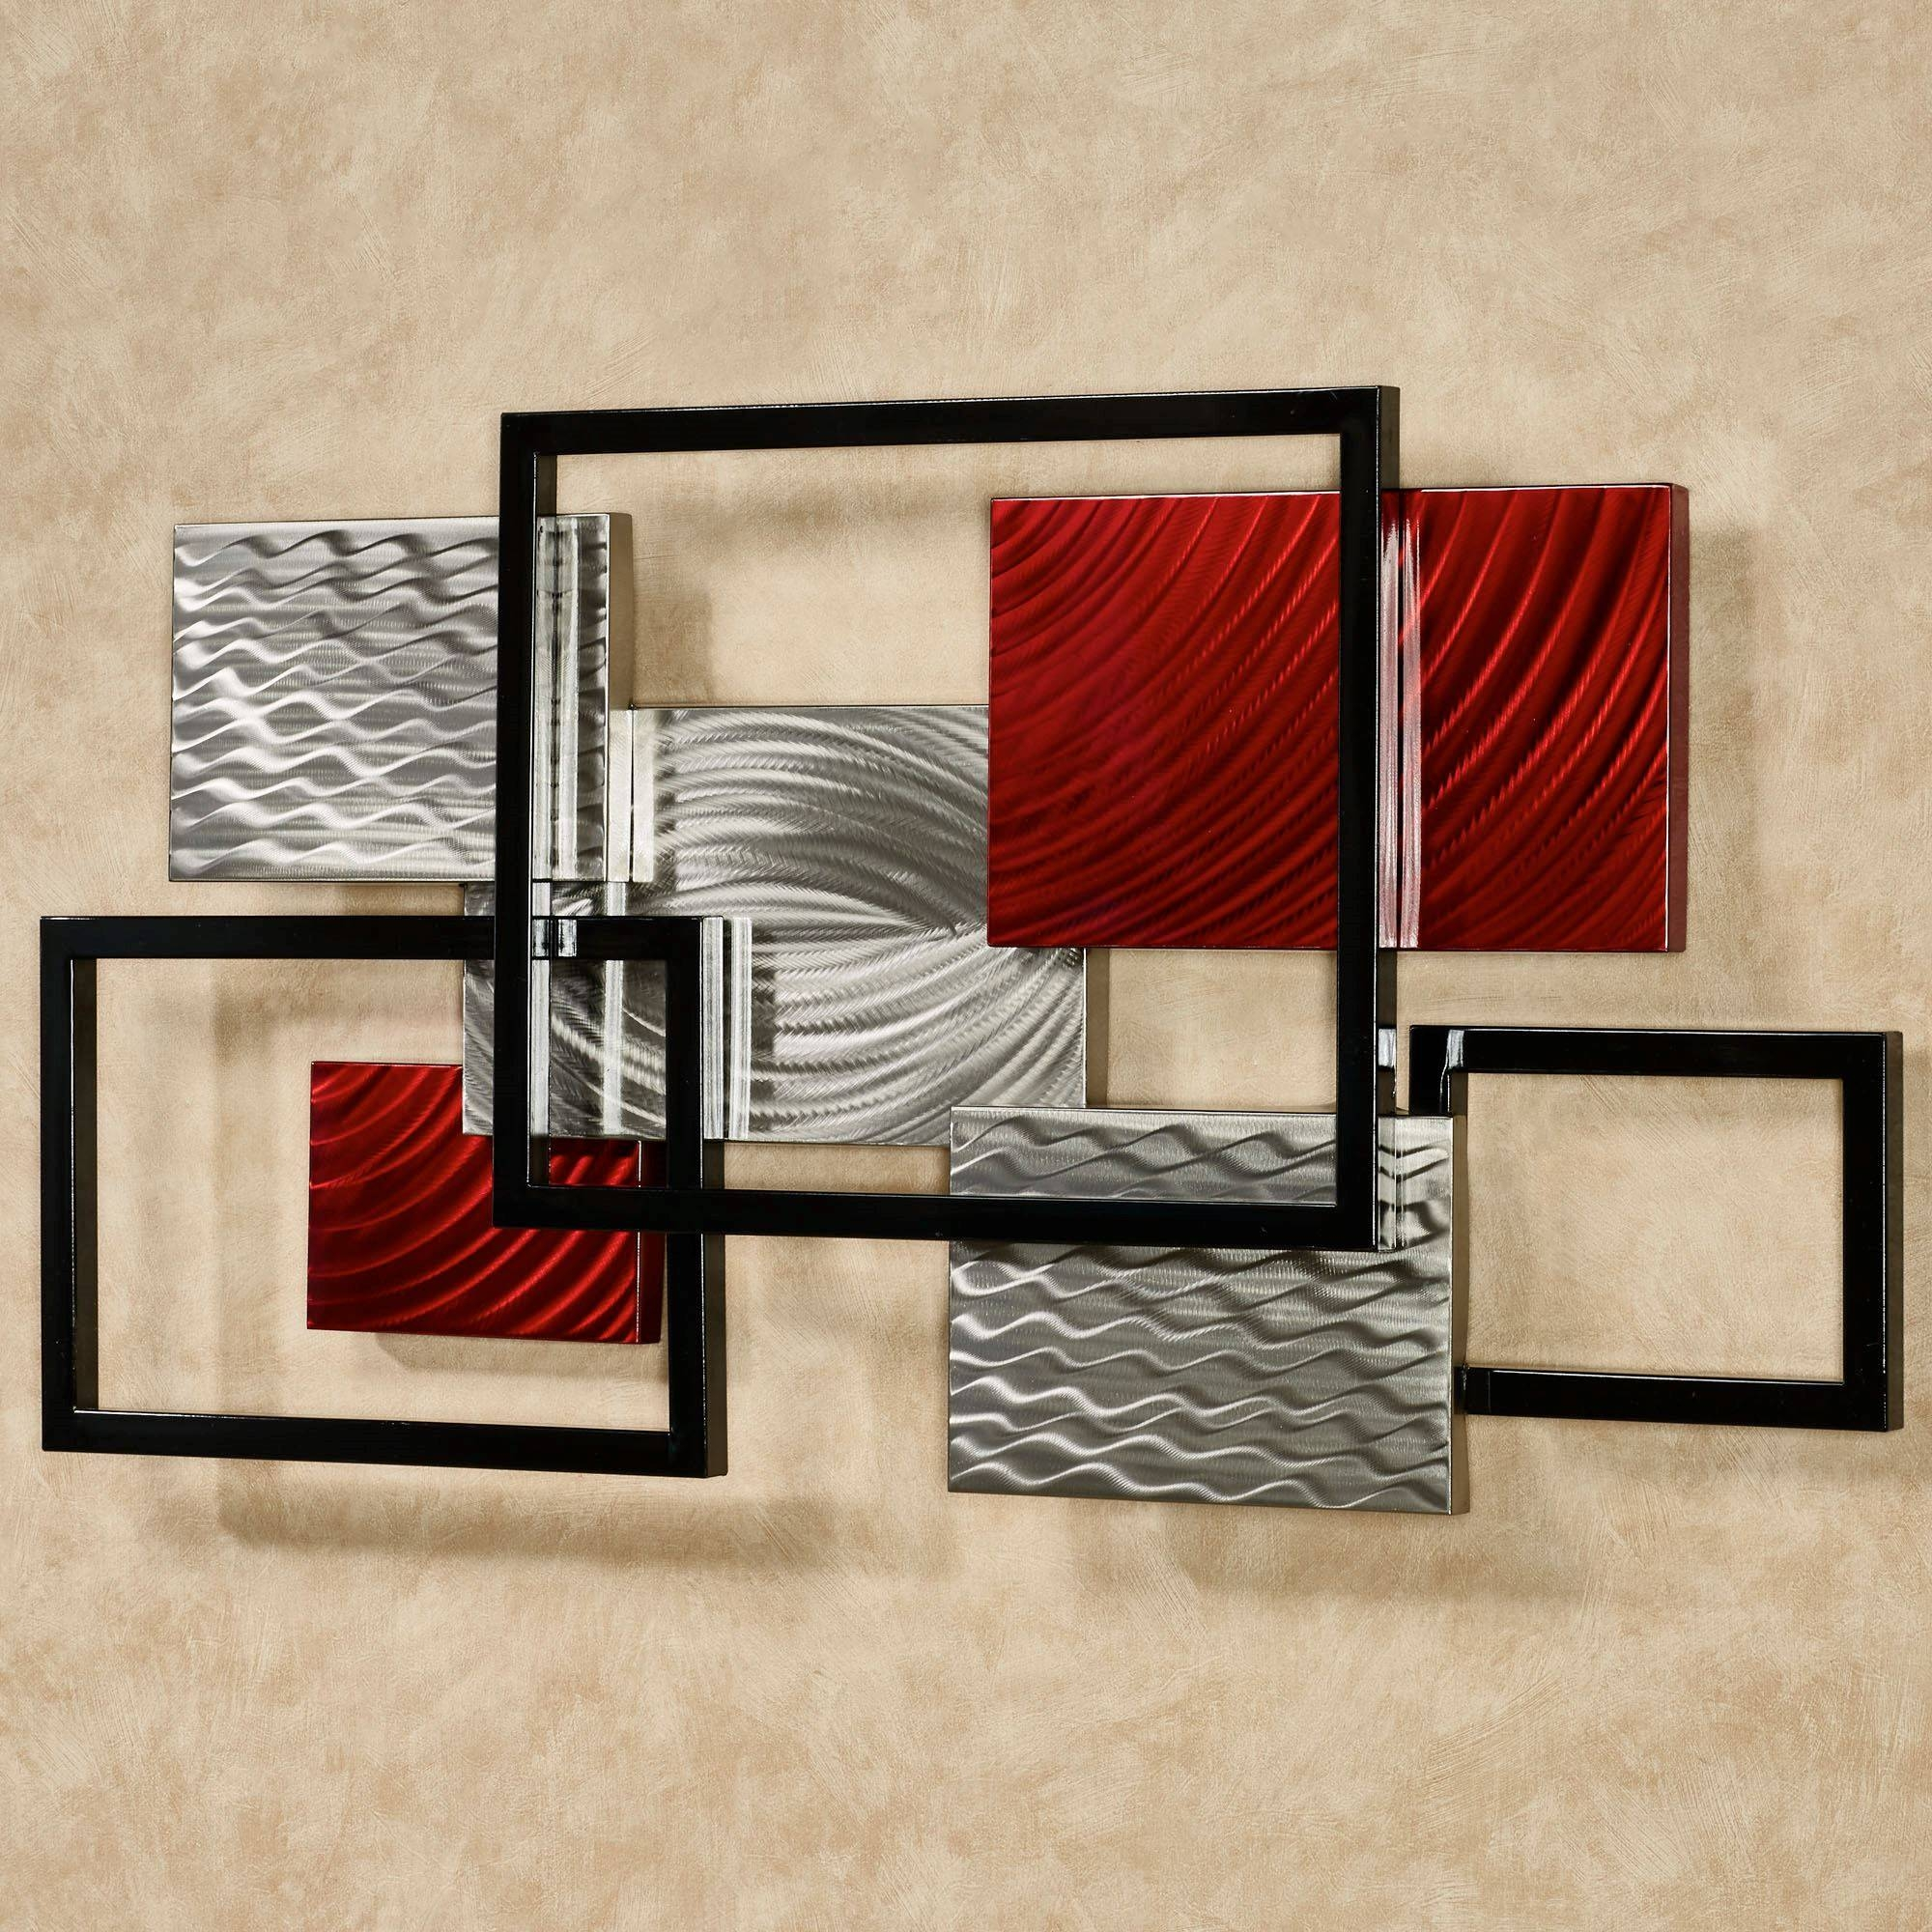 Framed Array Indoor Outdoor Abstract Metal Wall Sculpture In Most Popular Abstract Metal Wall Art Sculptures (View 4 of 20)